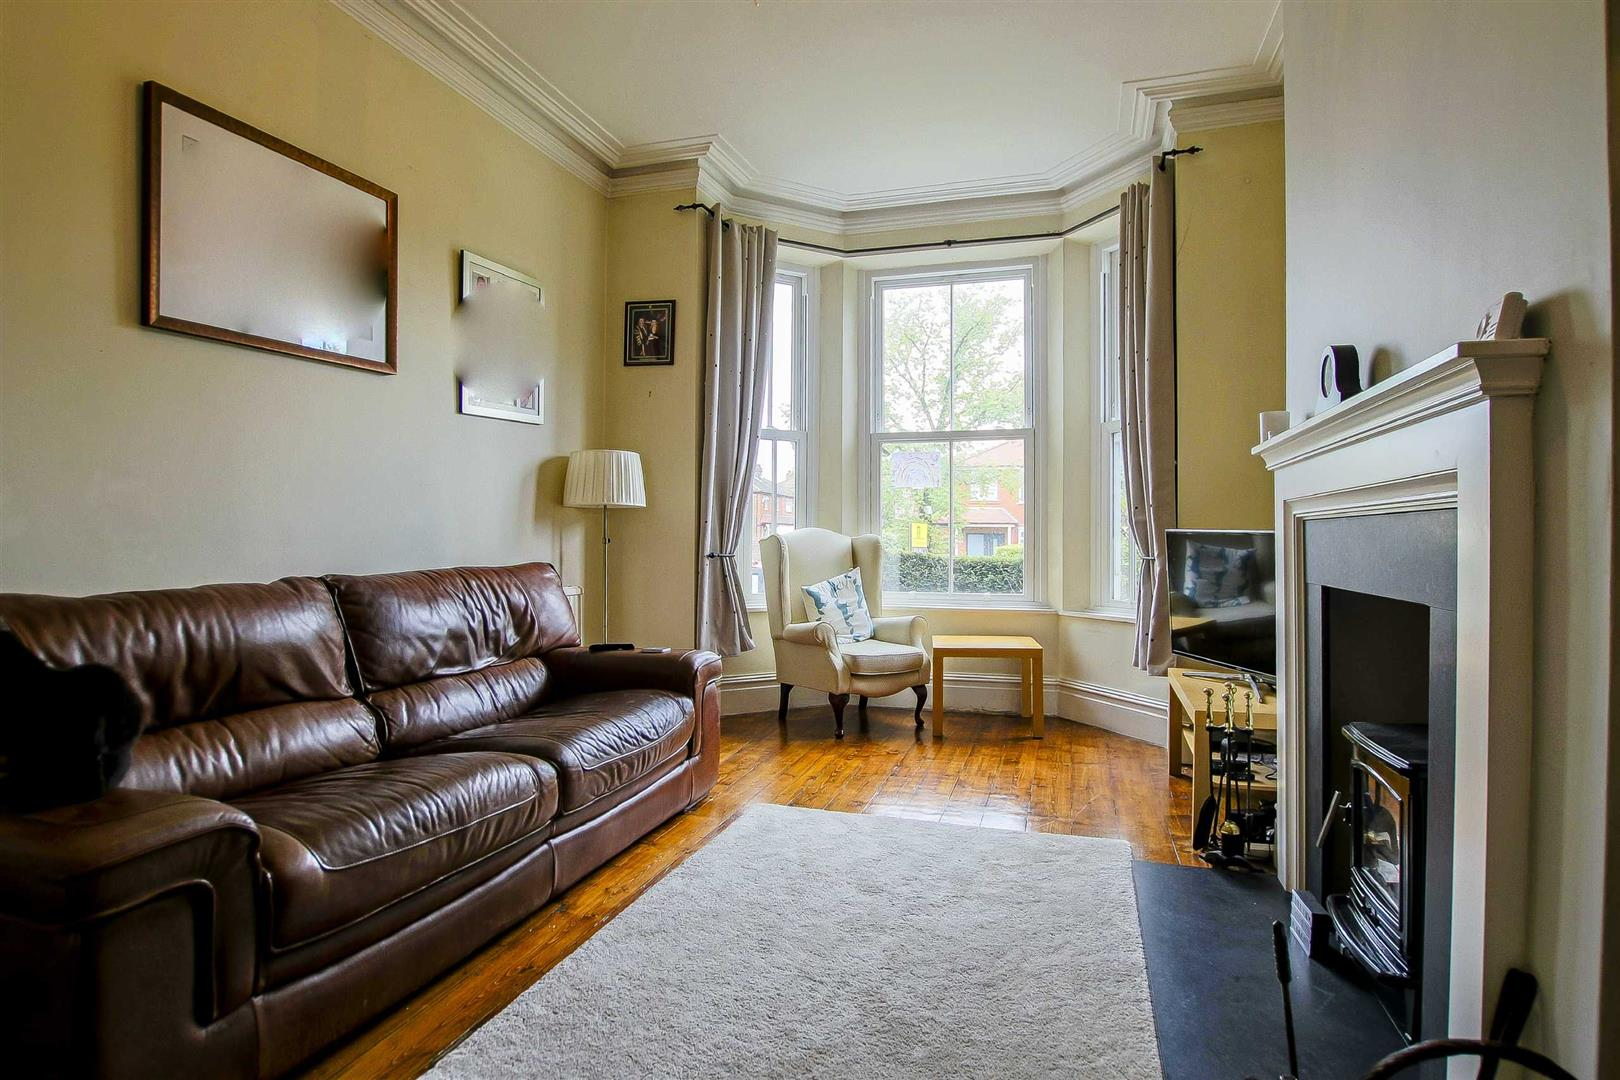 5 Bedroom Terraced House For Sale - Image 16